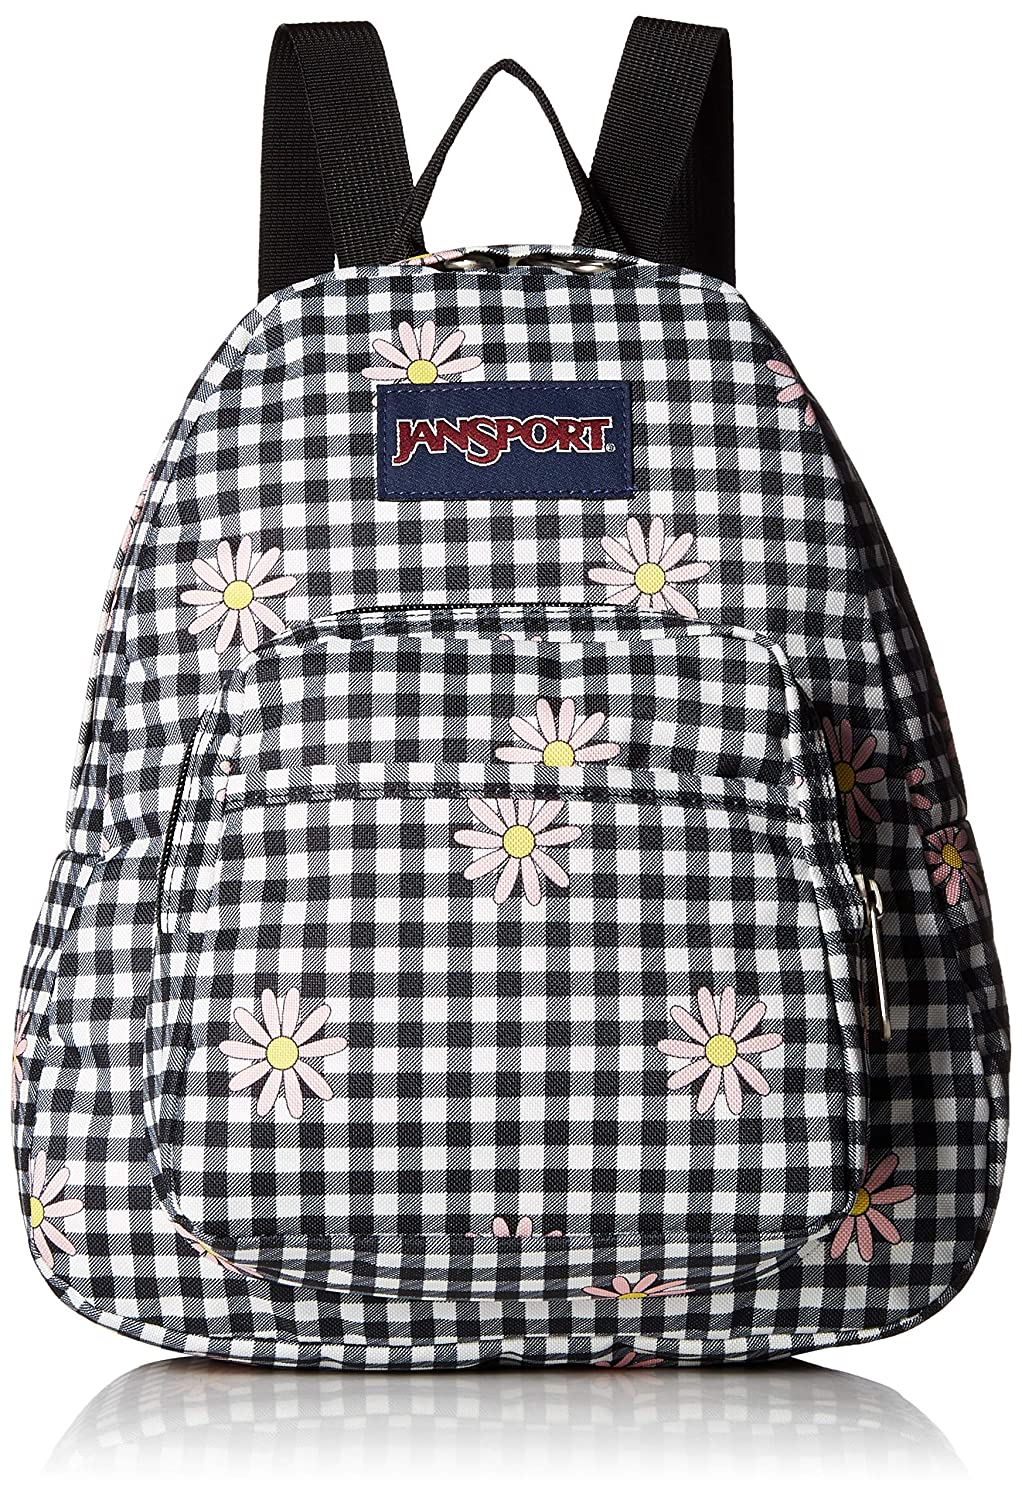 5be31c0ecf JANSPORT Half Pint Backpack Gingham Daisy  Amazon.co.uk  Sports   Outdoors